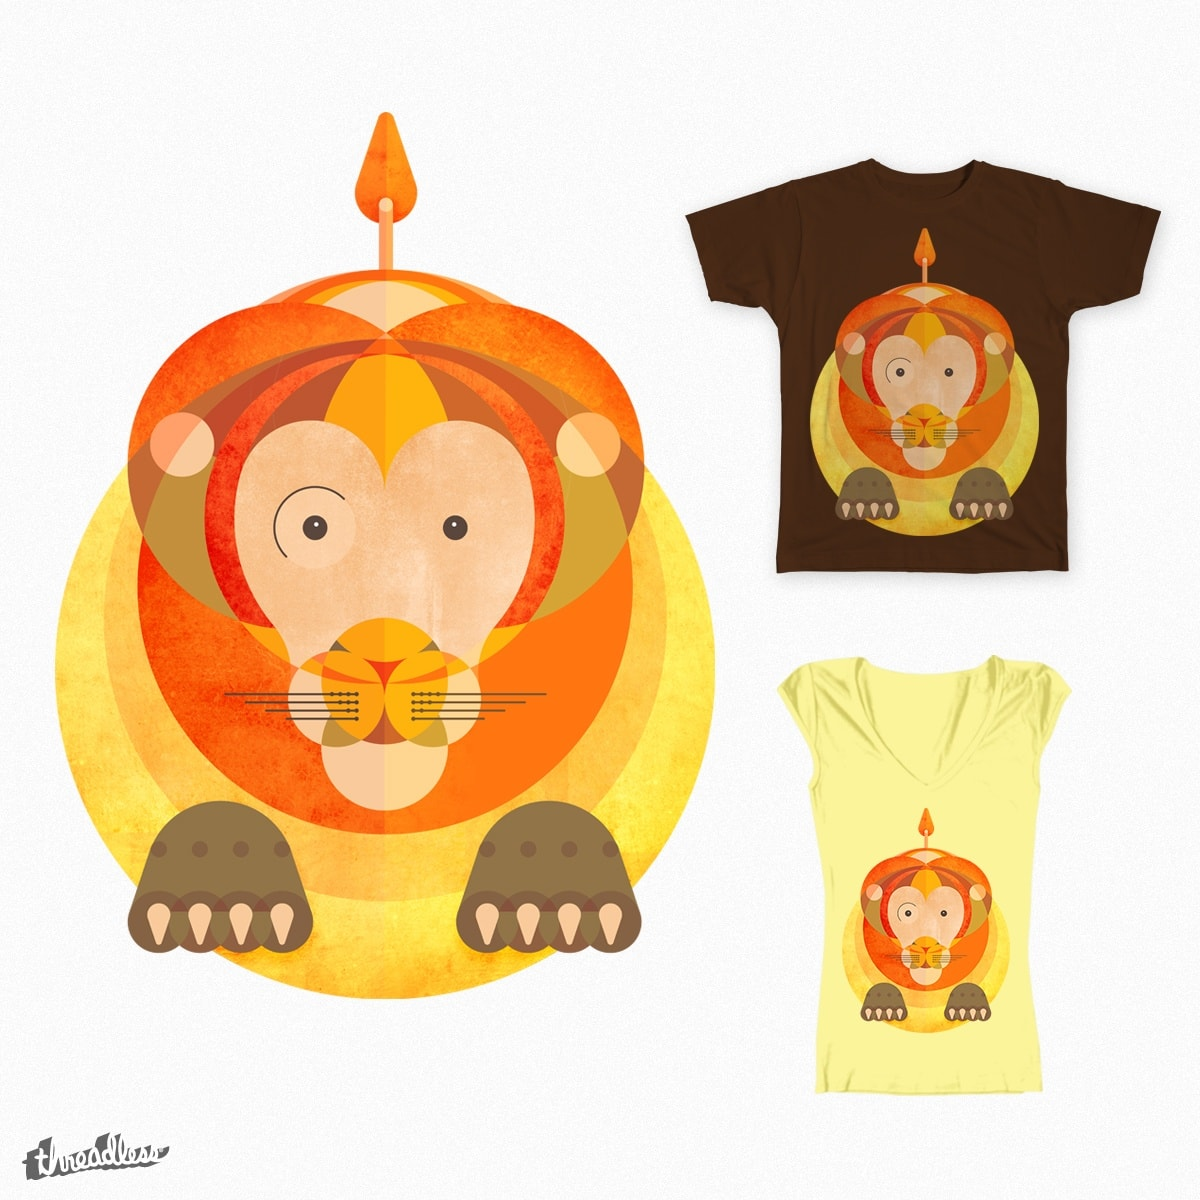 The rounded lion by juan-scocozza on Threadless